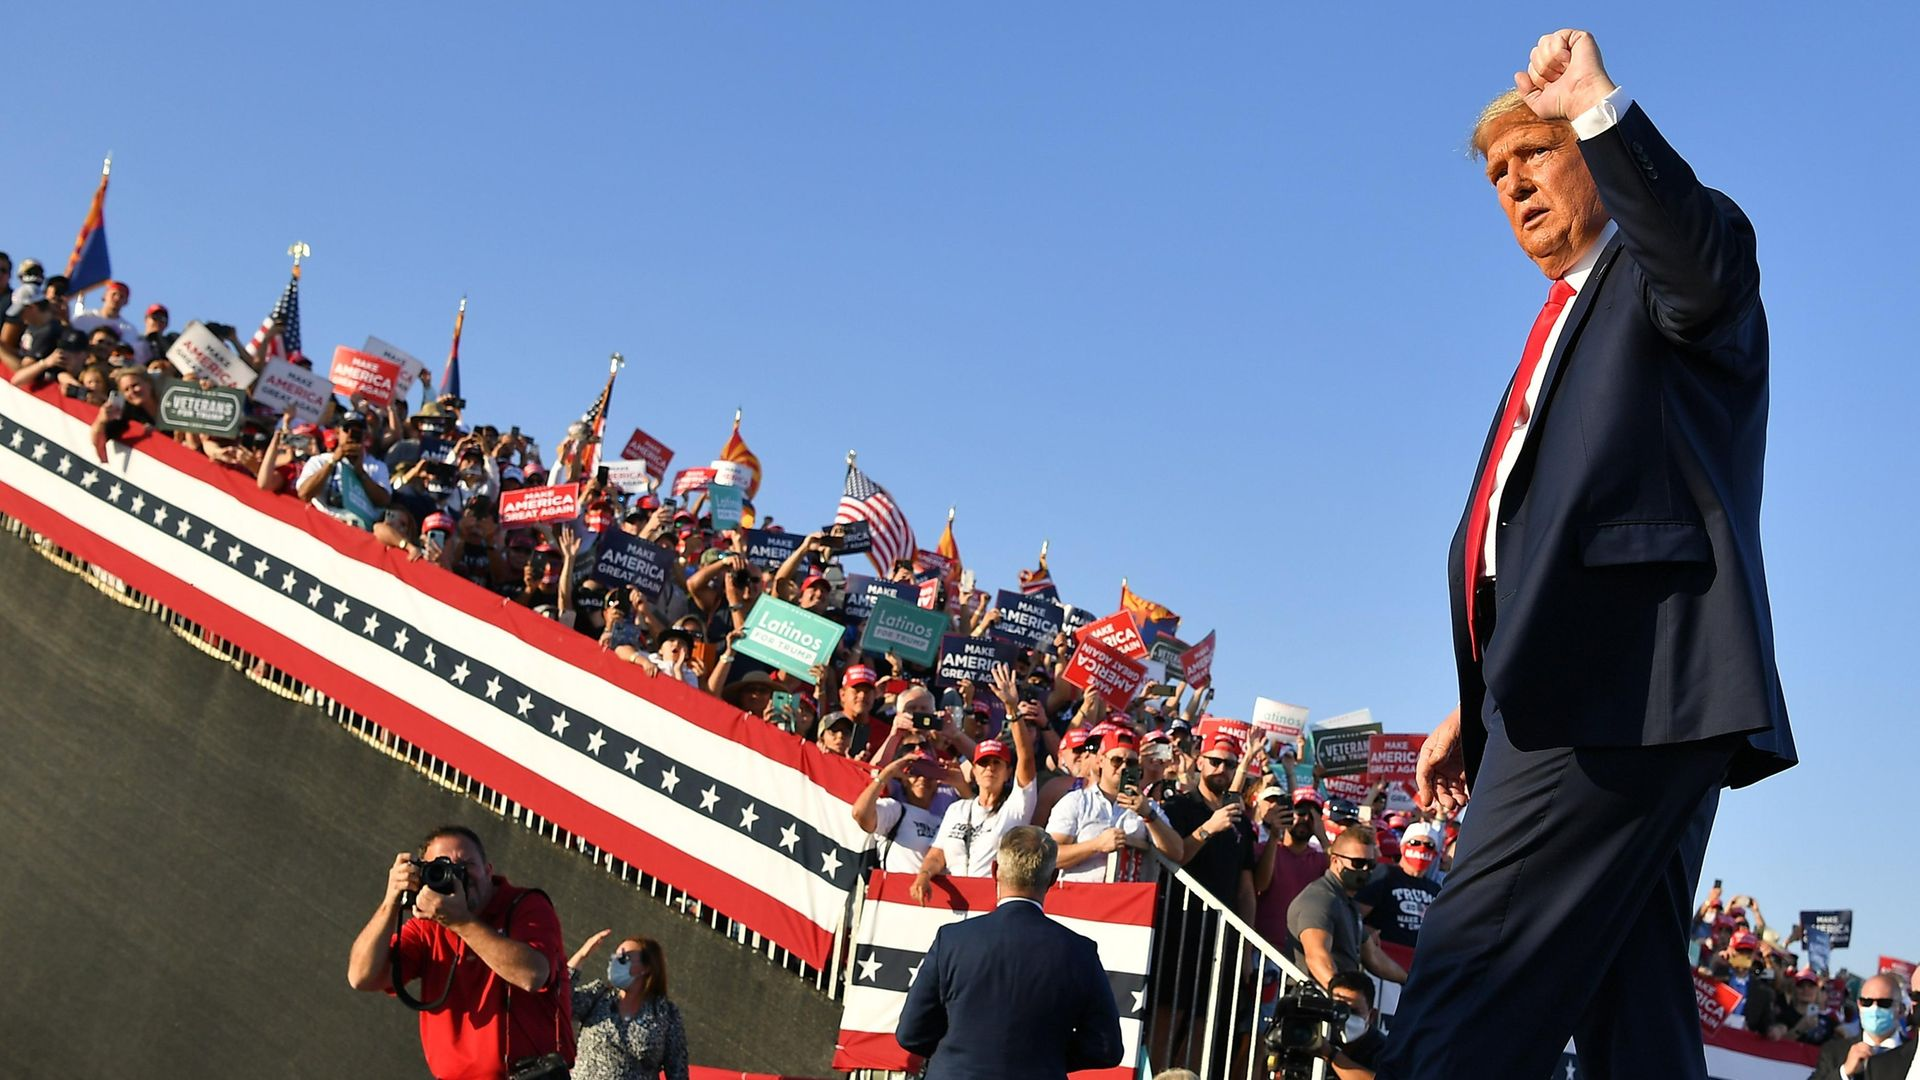 US President Donald Trump departs following a rally at Tucson International Airport in Tucson, Arizona on October 19, 2020 - Credit: AFP via Getty Images